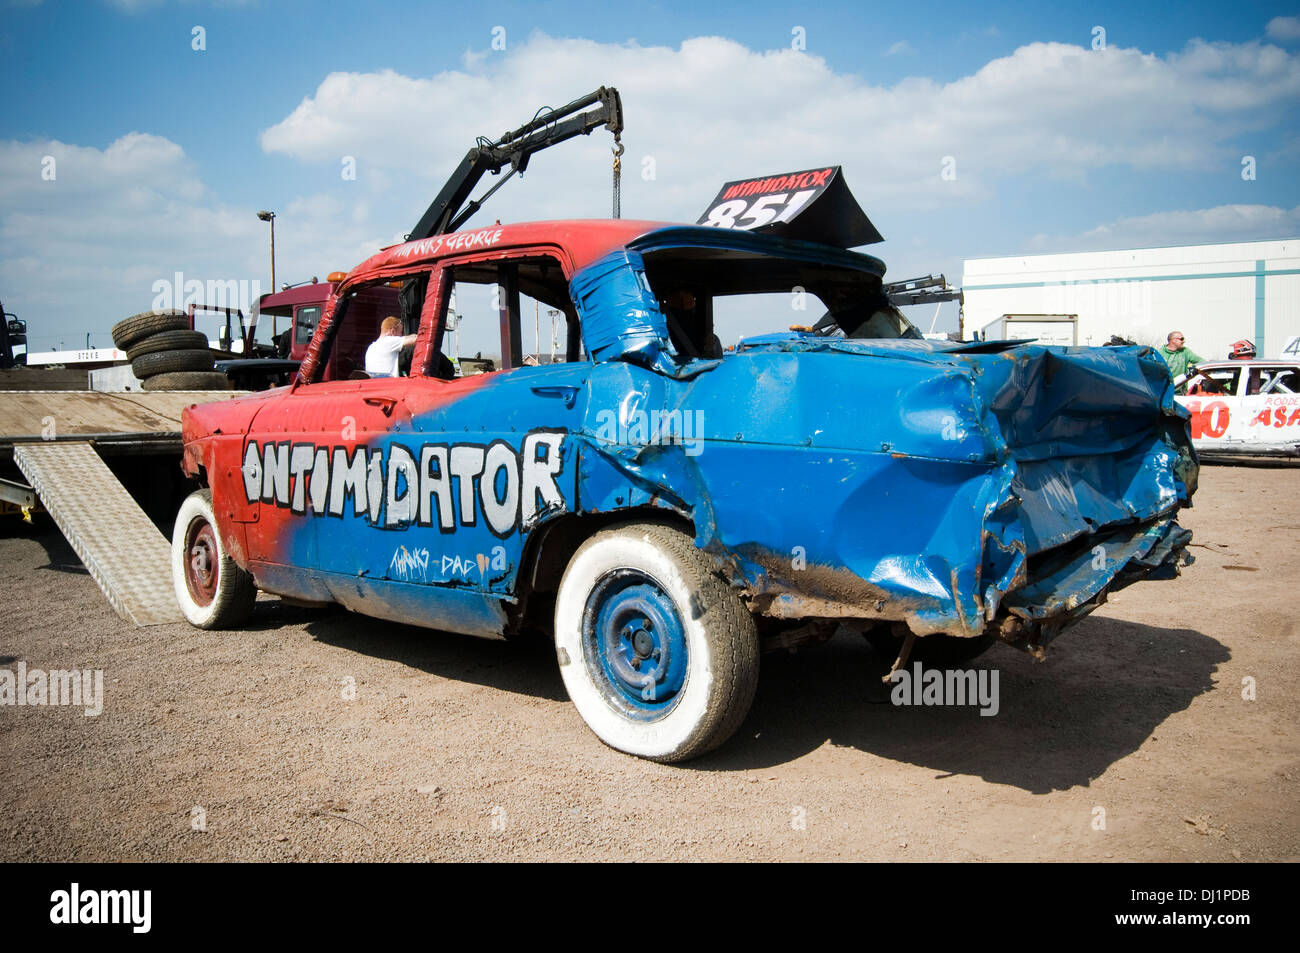 Banger racing cars Stock Photo: 59960377 - Alamy